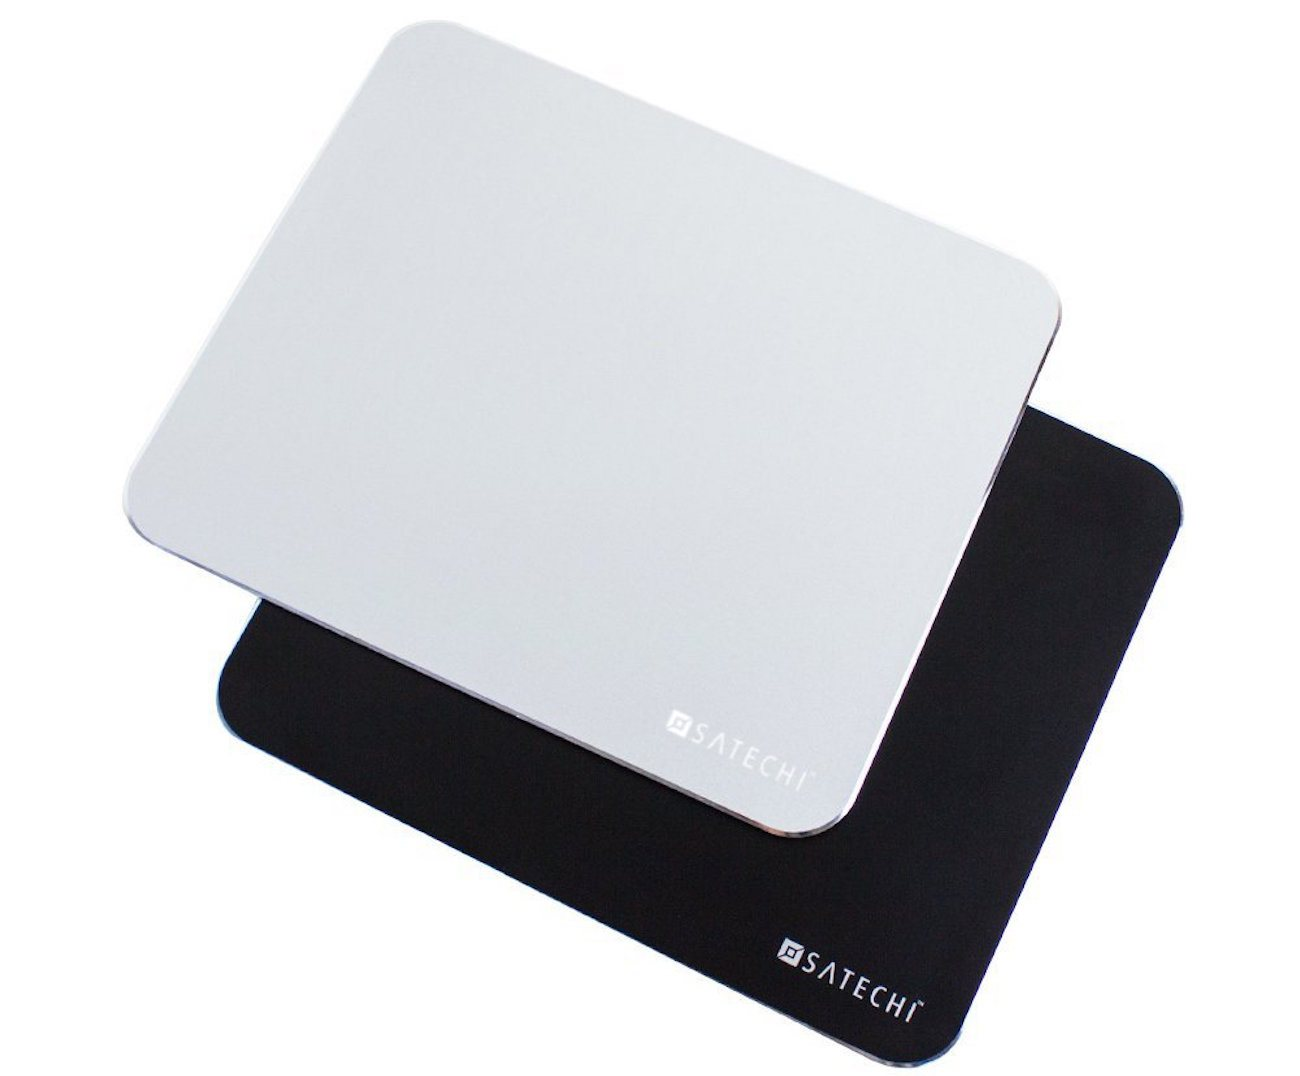 Aluminum Mouse Pad by Satechi